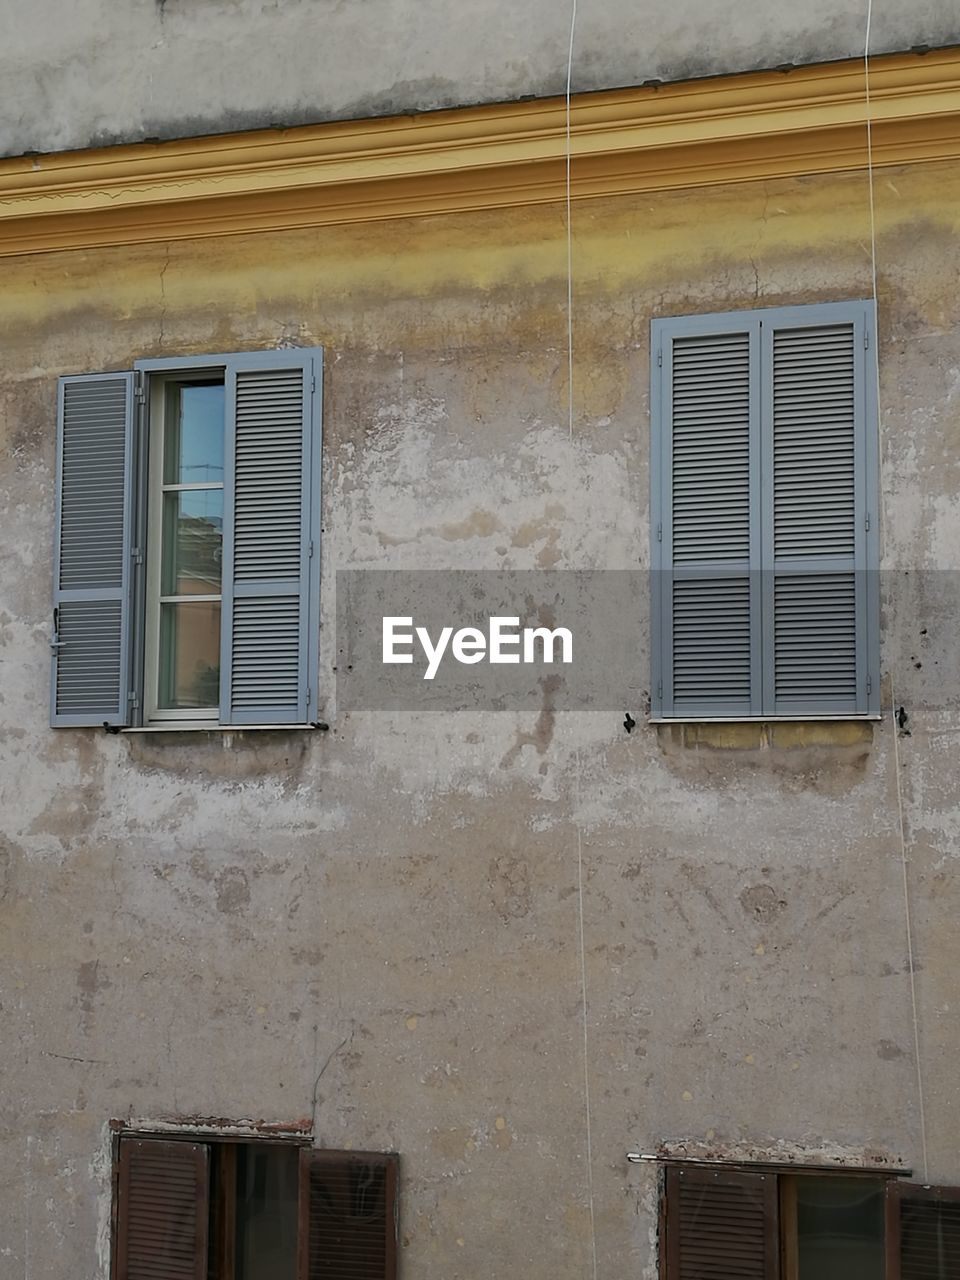 window, architecture, building, building exterior, built structure, no people, day, wall - building feature, residential district, house, low angle view, old, outdoors, shutter, wall, facade, closed, reflection, protection, nature, window frame, apartment